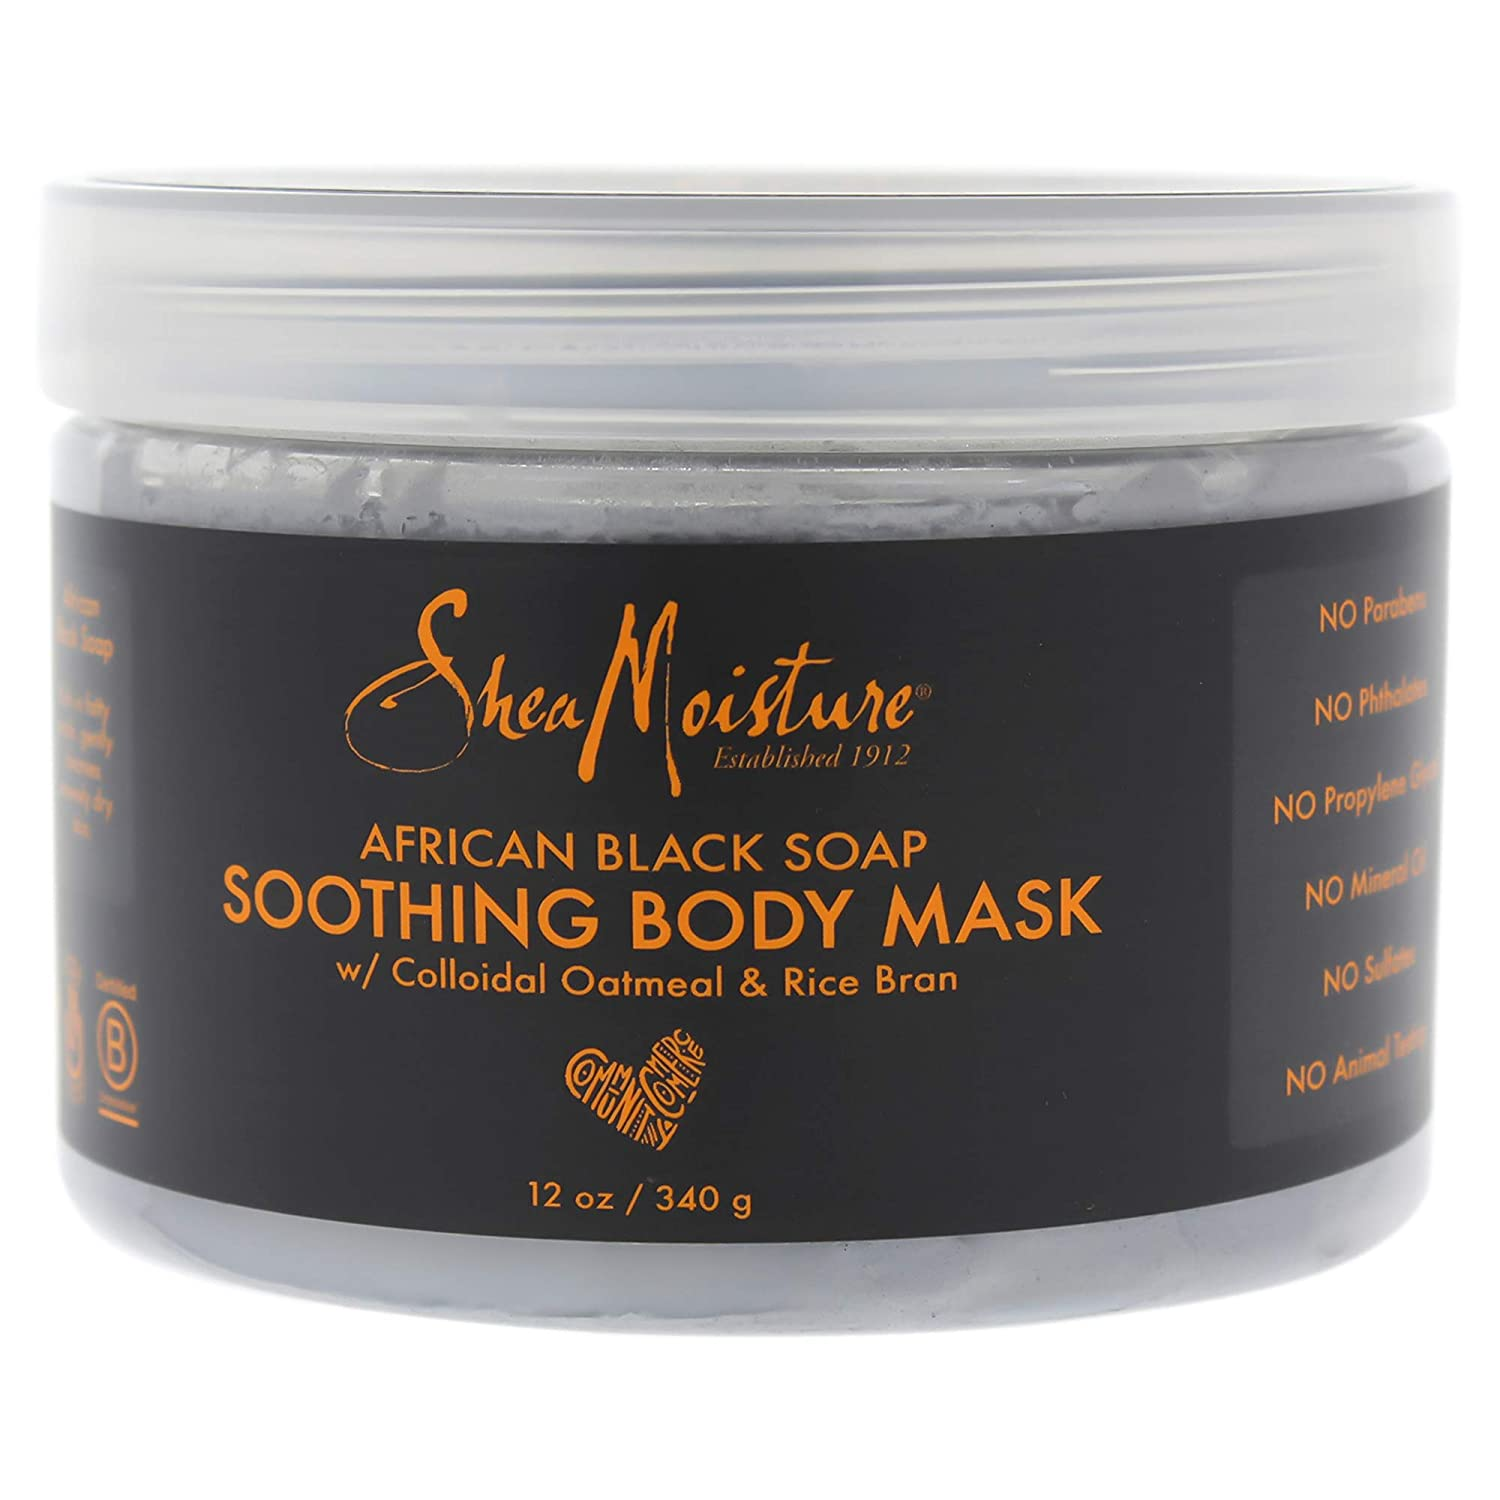 Shea Moisture African Black Soap Soothing Body Mask By Shea Moisture for Unisex - 12 Oz Mask, 12 Ounce PerfumeWorldWide Inc. Drop Ship I0084224